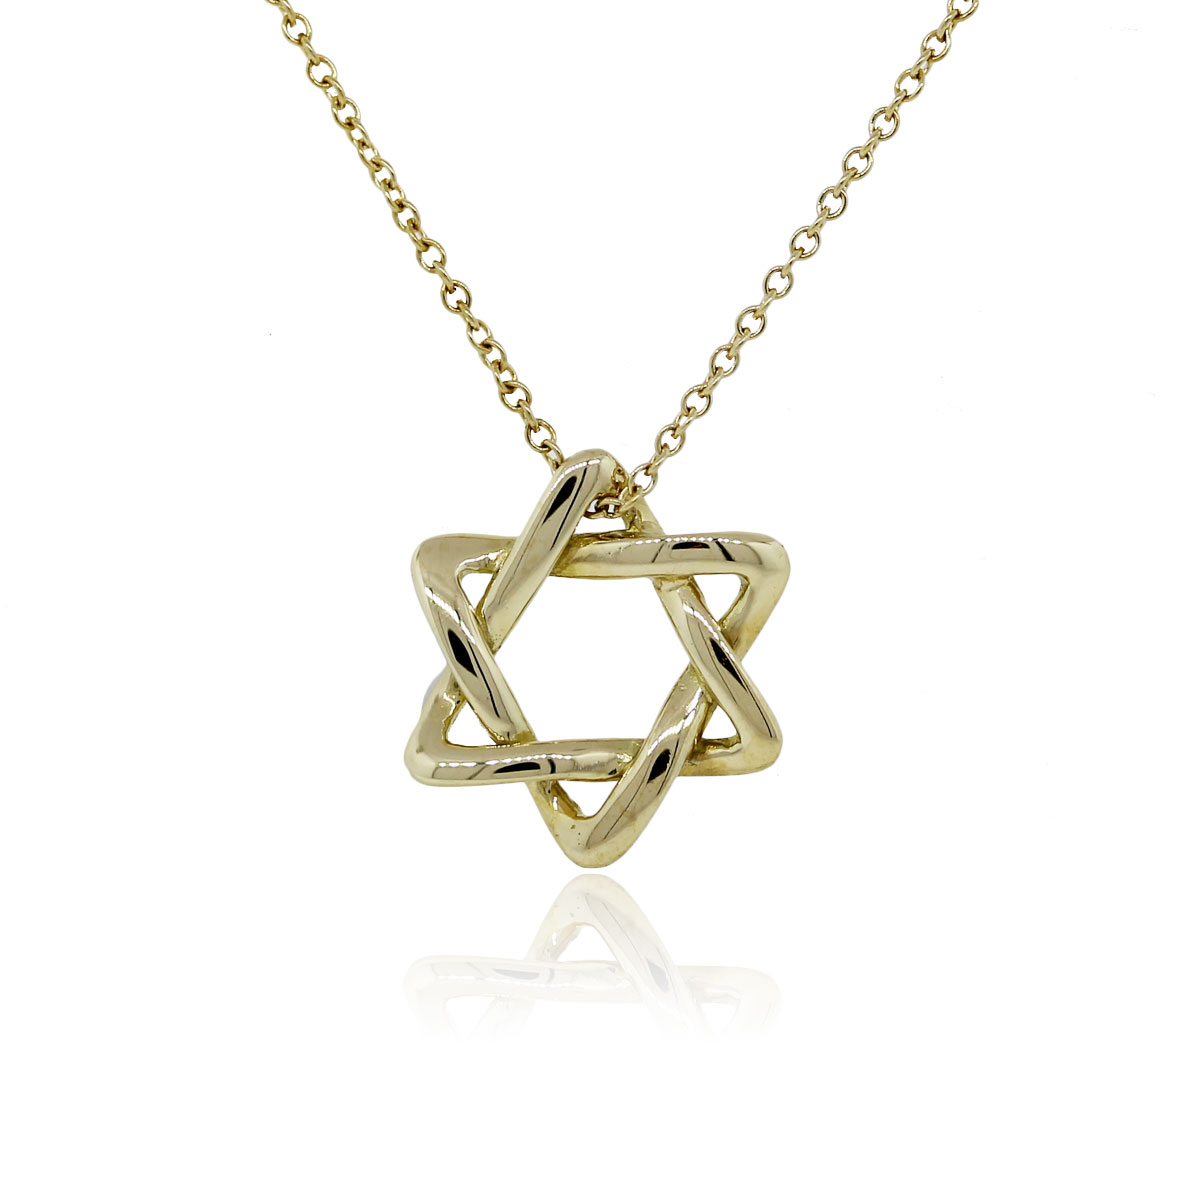 Tiffany co 18k yellow gold star of david necklace for Star of david necklace mens jewelry